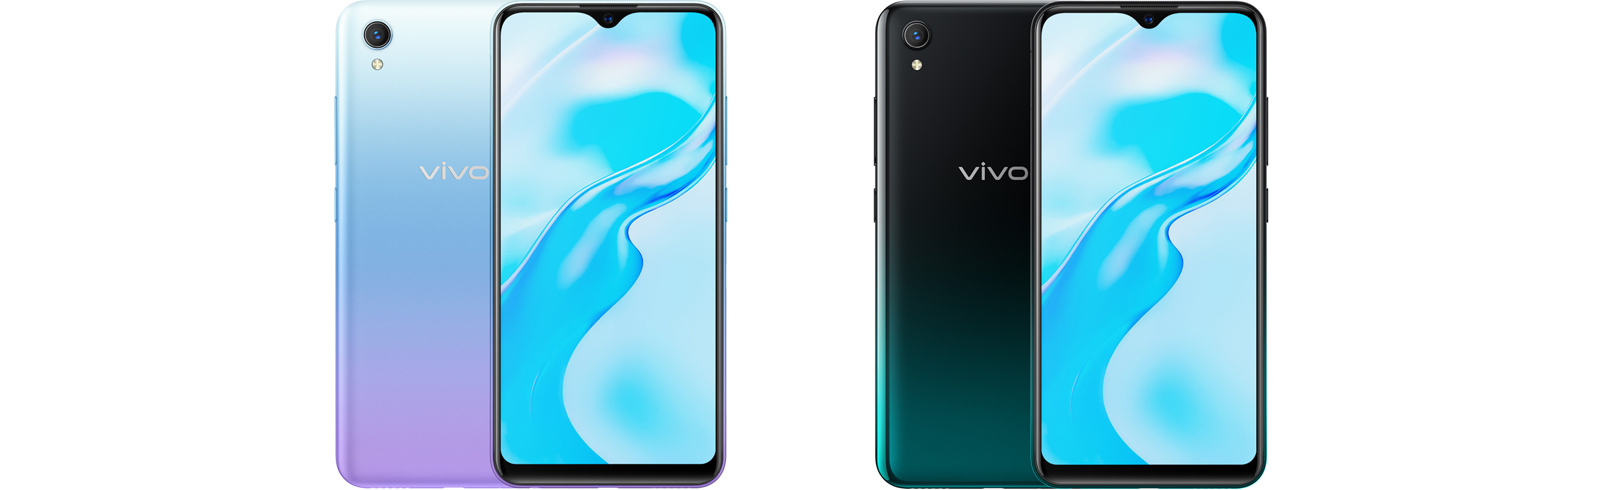 The Vivo Y1s with a MediaTek Helio P35 chipset goes on sale in India